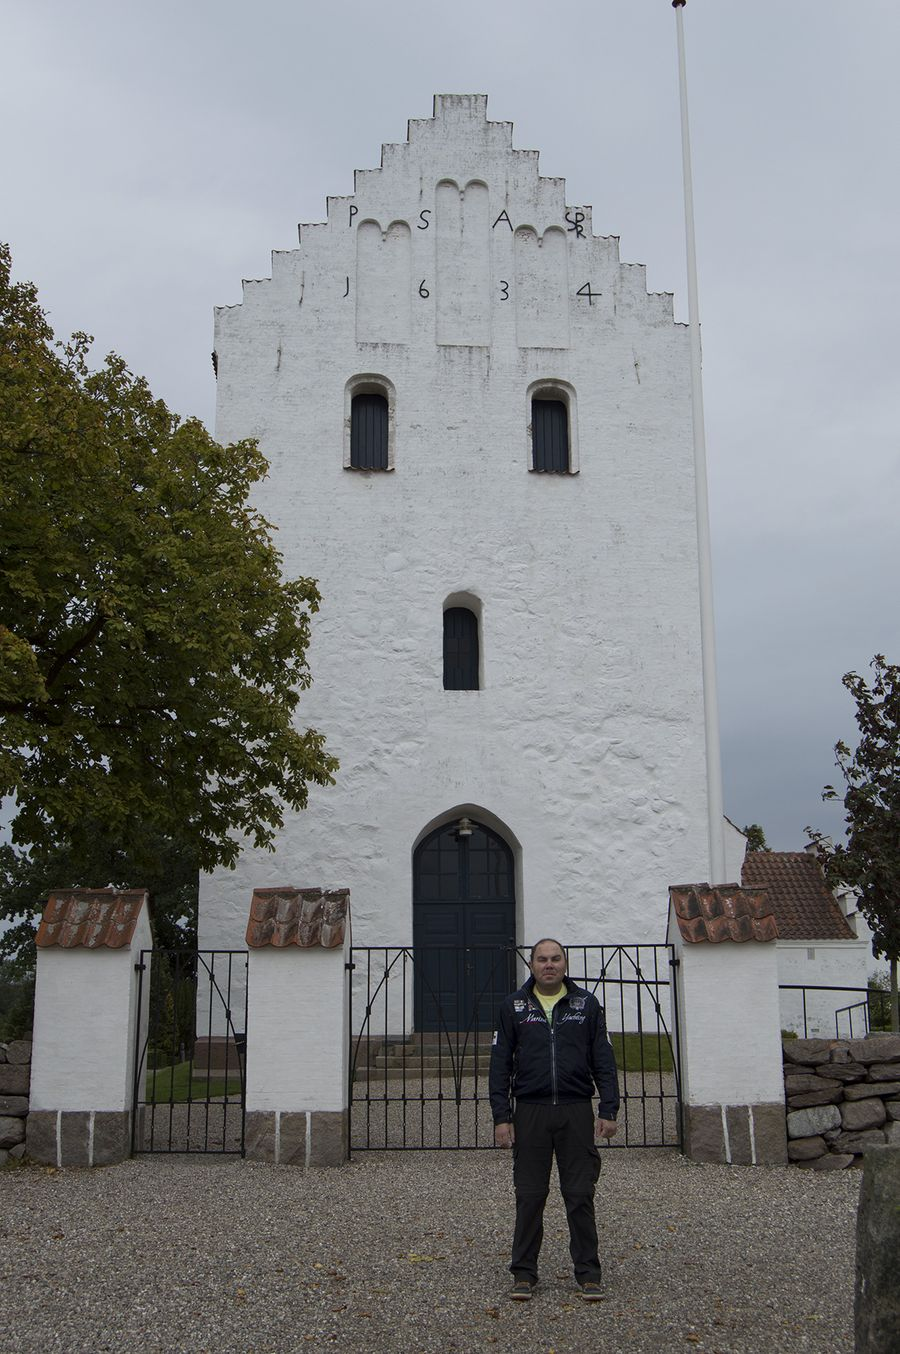 I standing in front of Landet church on the island Teslinge at 1 of September 2014